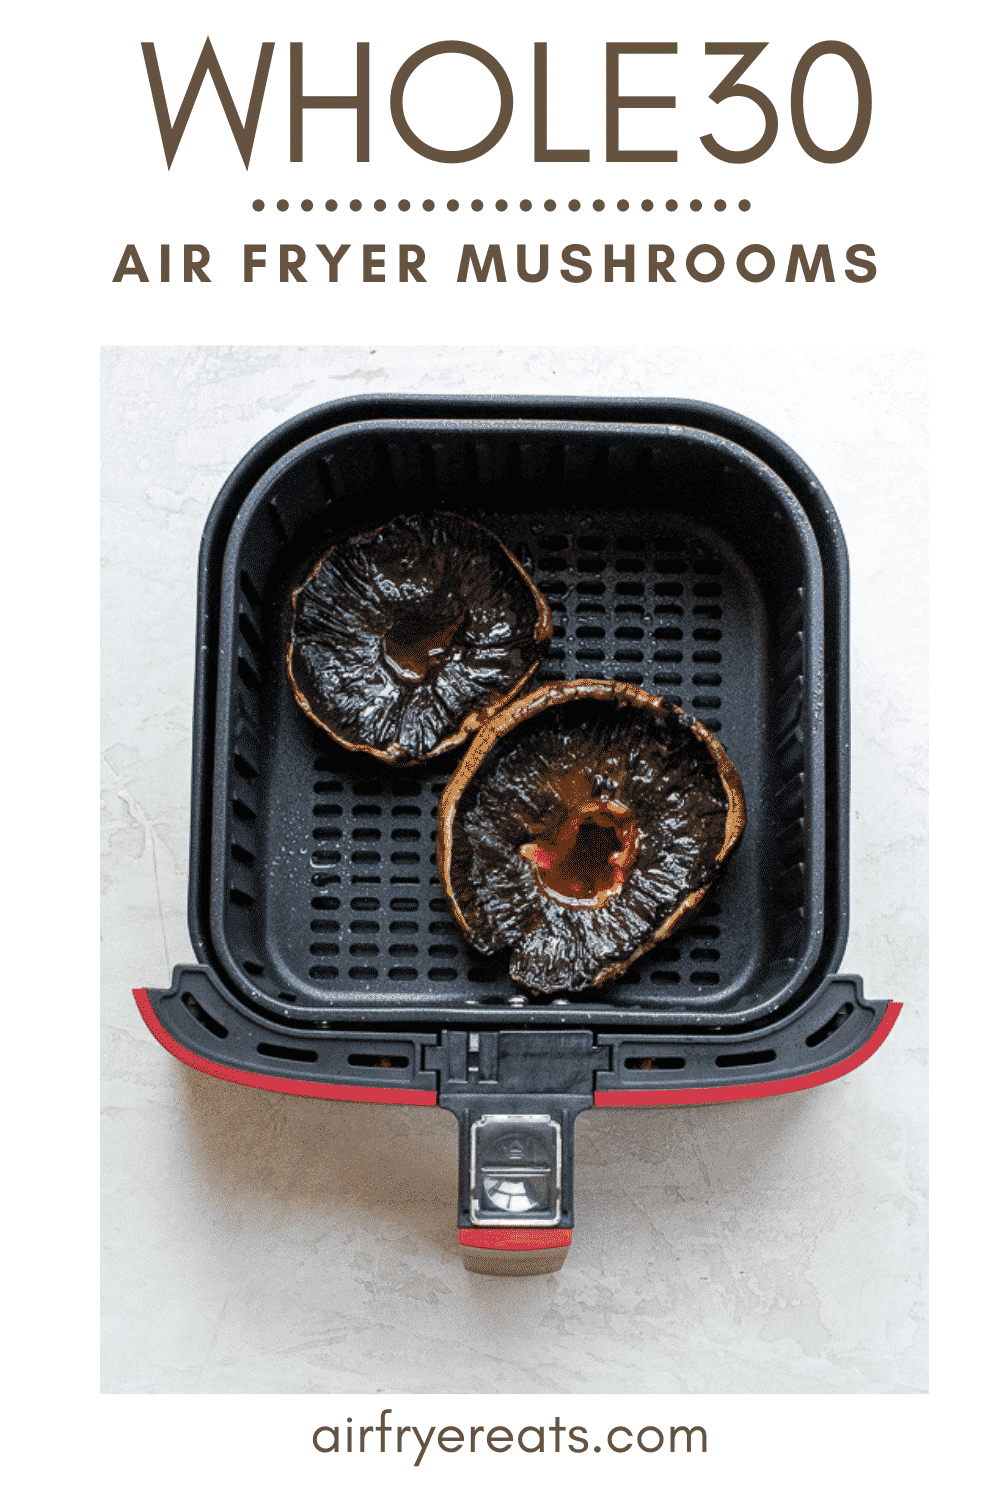 These Air Fryer Mushrooms are a great meatless Monday dish with tons of flavor and protein! Slice and serve for a main dish in less than 20 minutes! #airfryermushrooms #portobellomushrooms #mushroomcaps via @vegetarianmamma